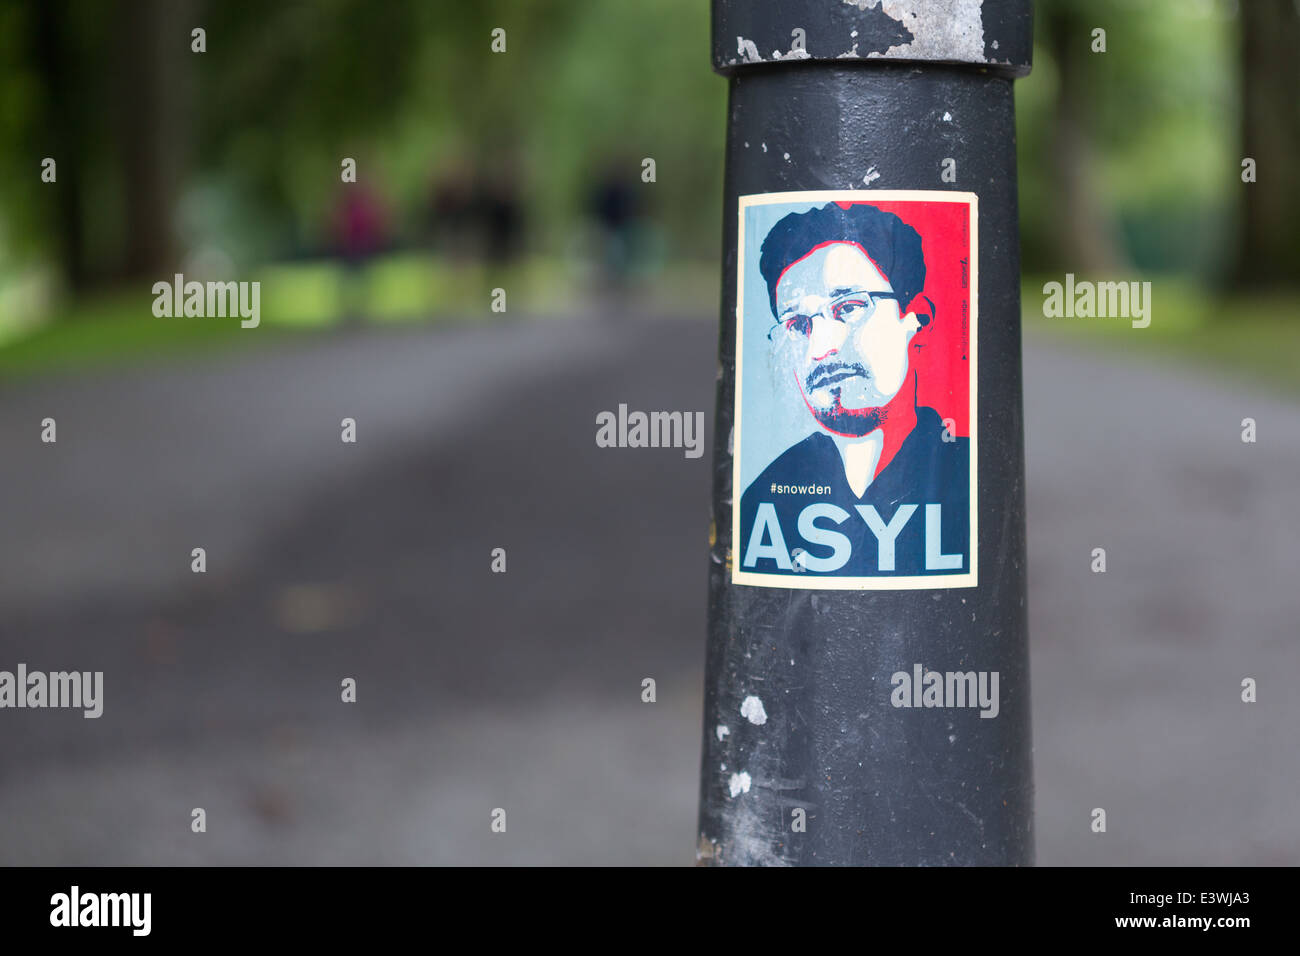 A poster calling for Edward Snowden to be given asylum - Stock Image